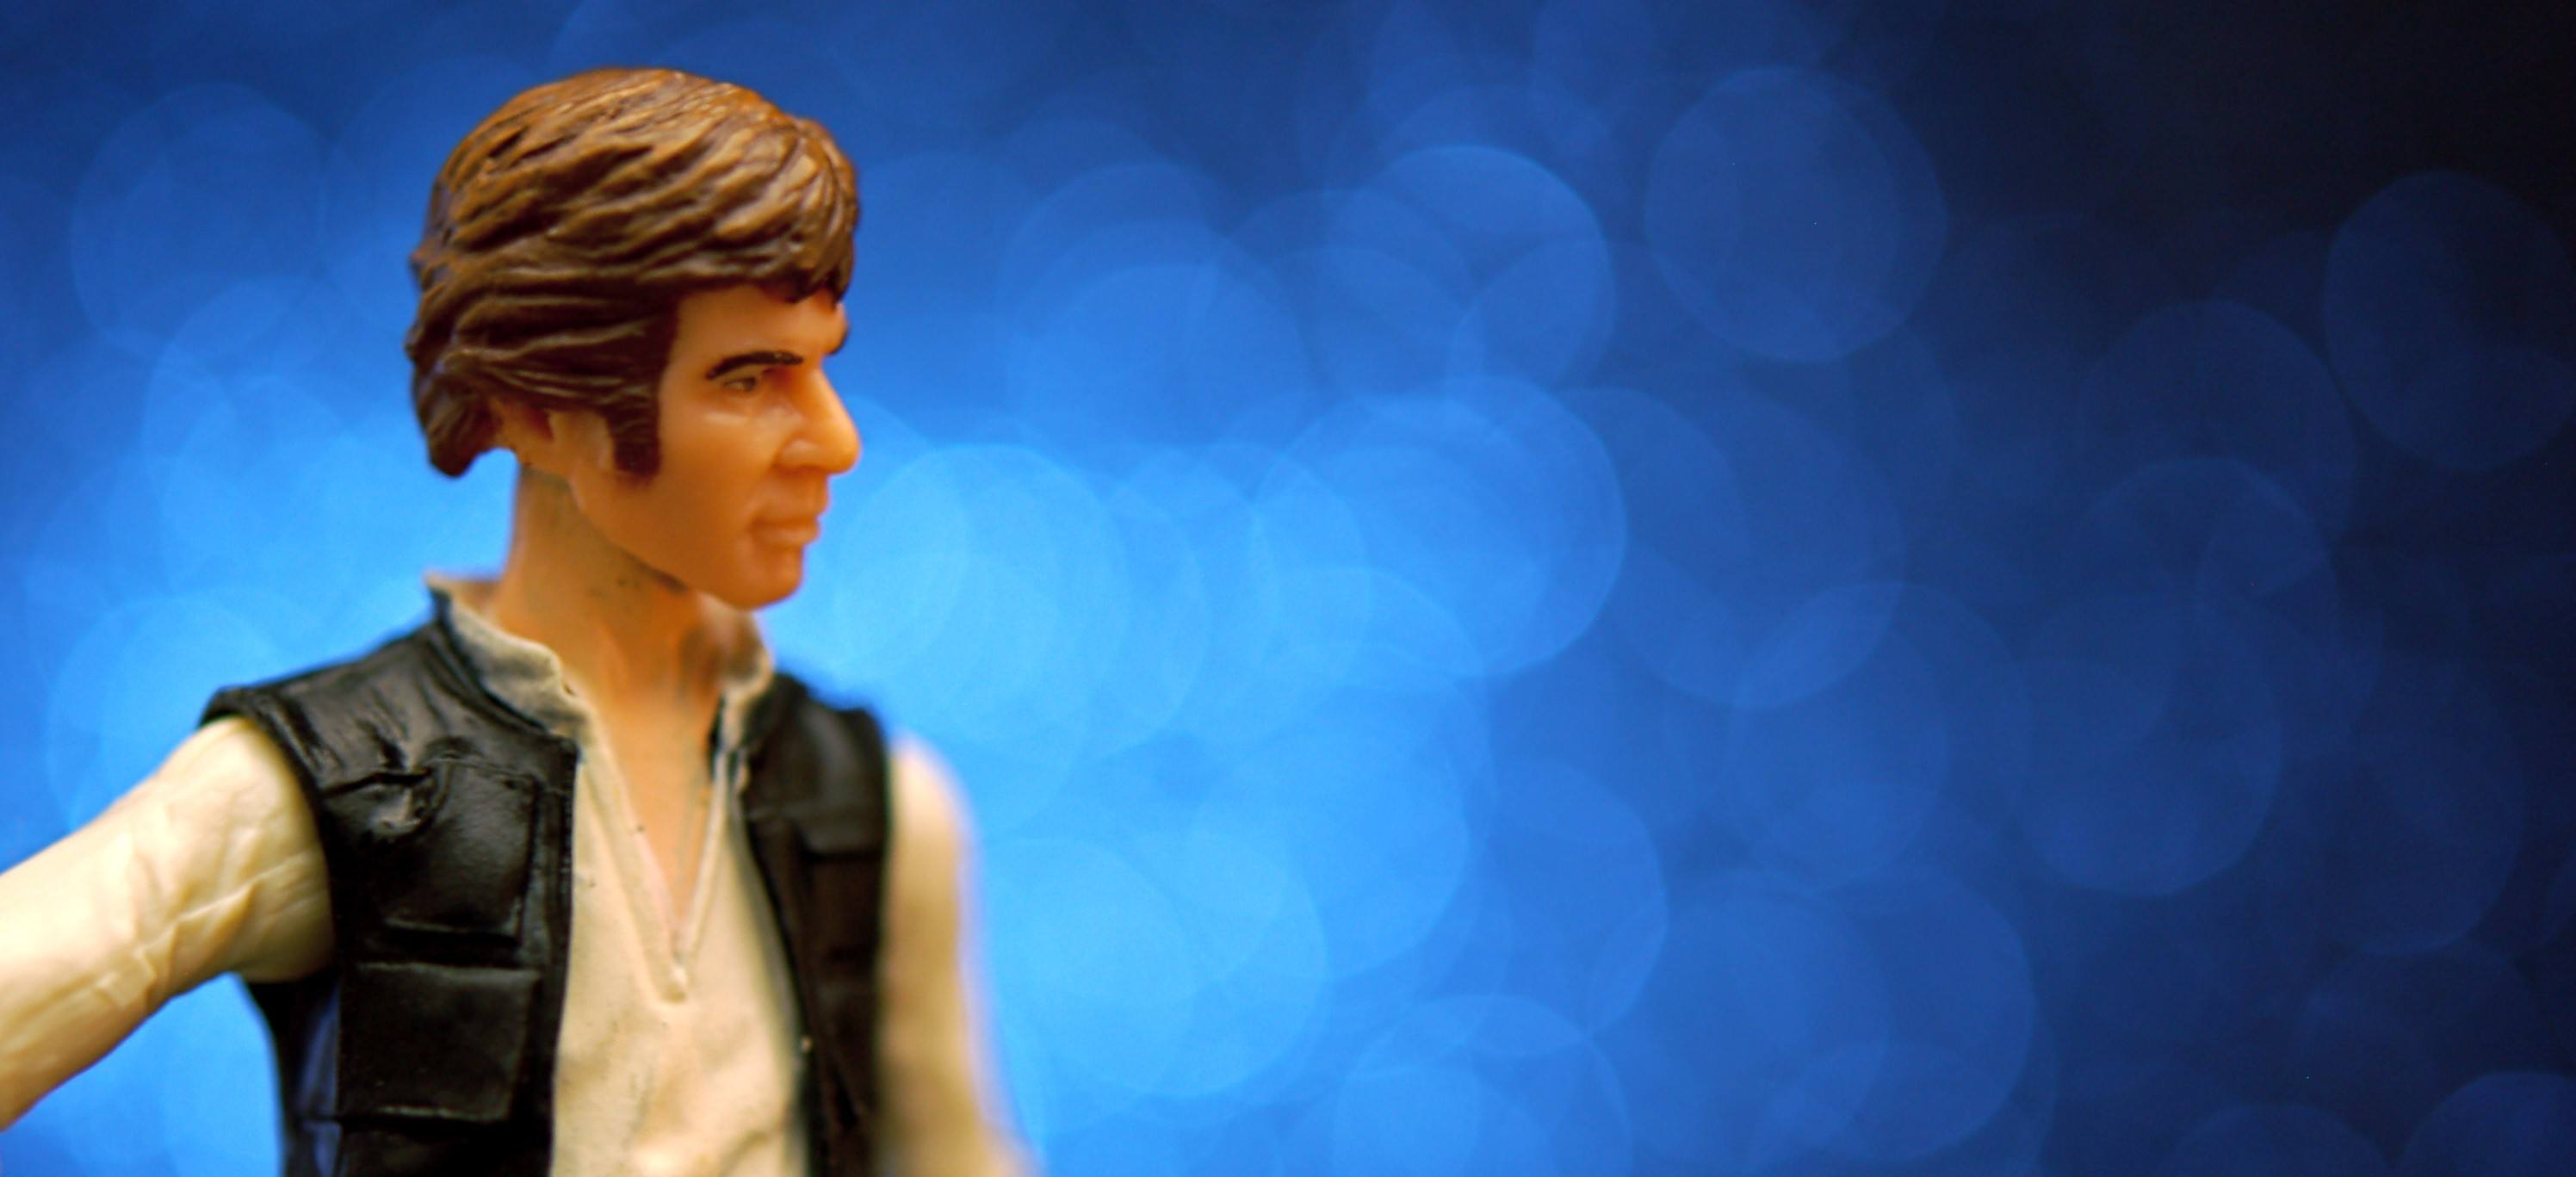 A picture of a Han Solo toy